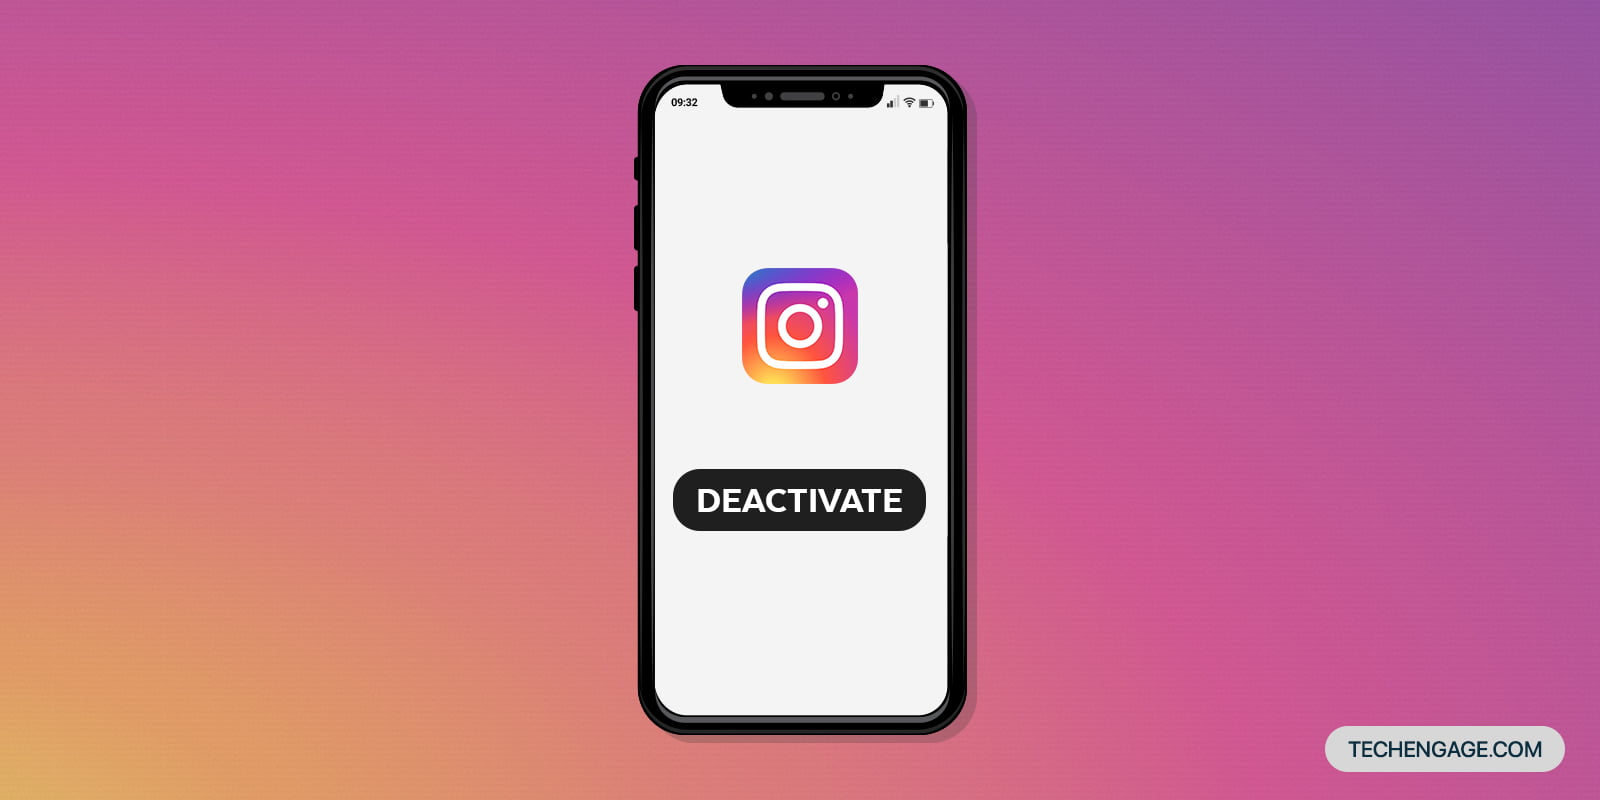 How to disable or delete an Instagram account